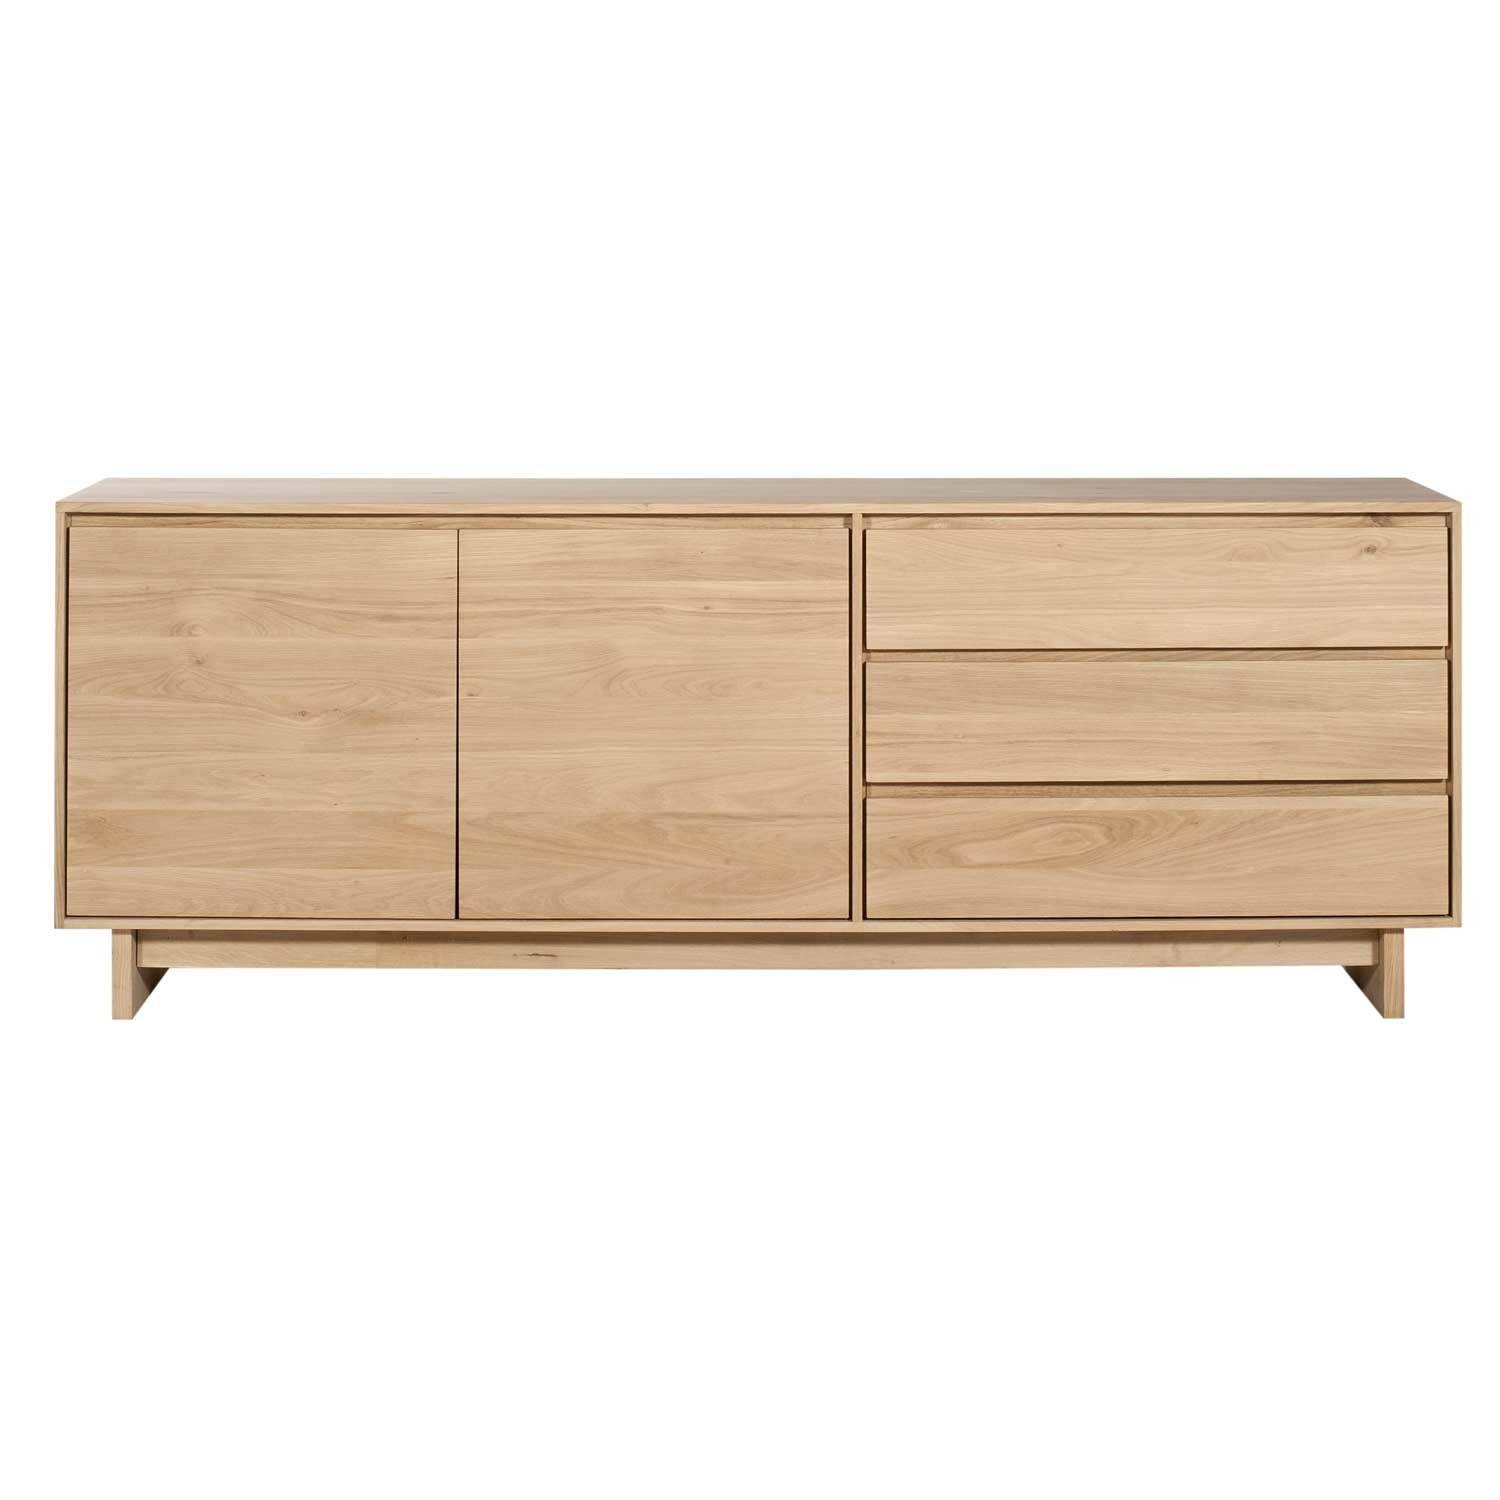 Ethnicraft Oak Wave Sideboard with regard to Small Low Sideboards (Image 6 of 15)